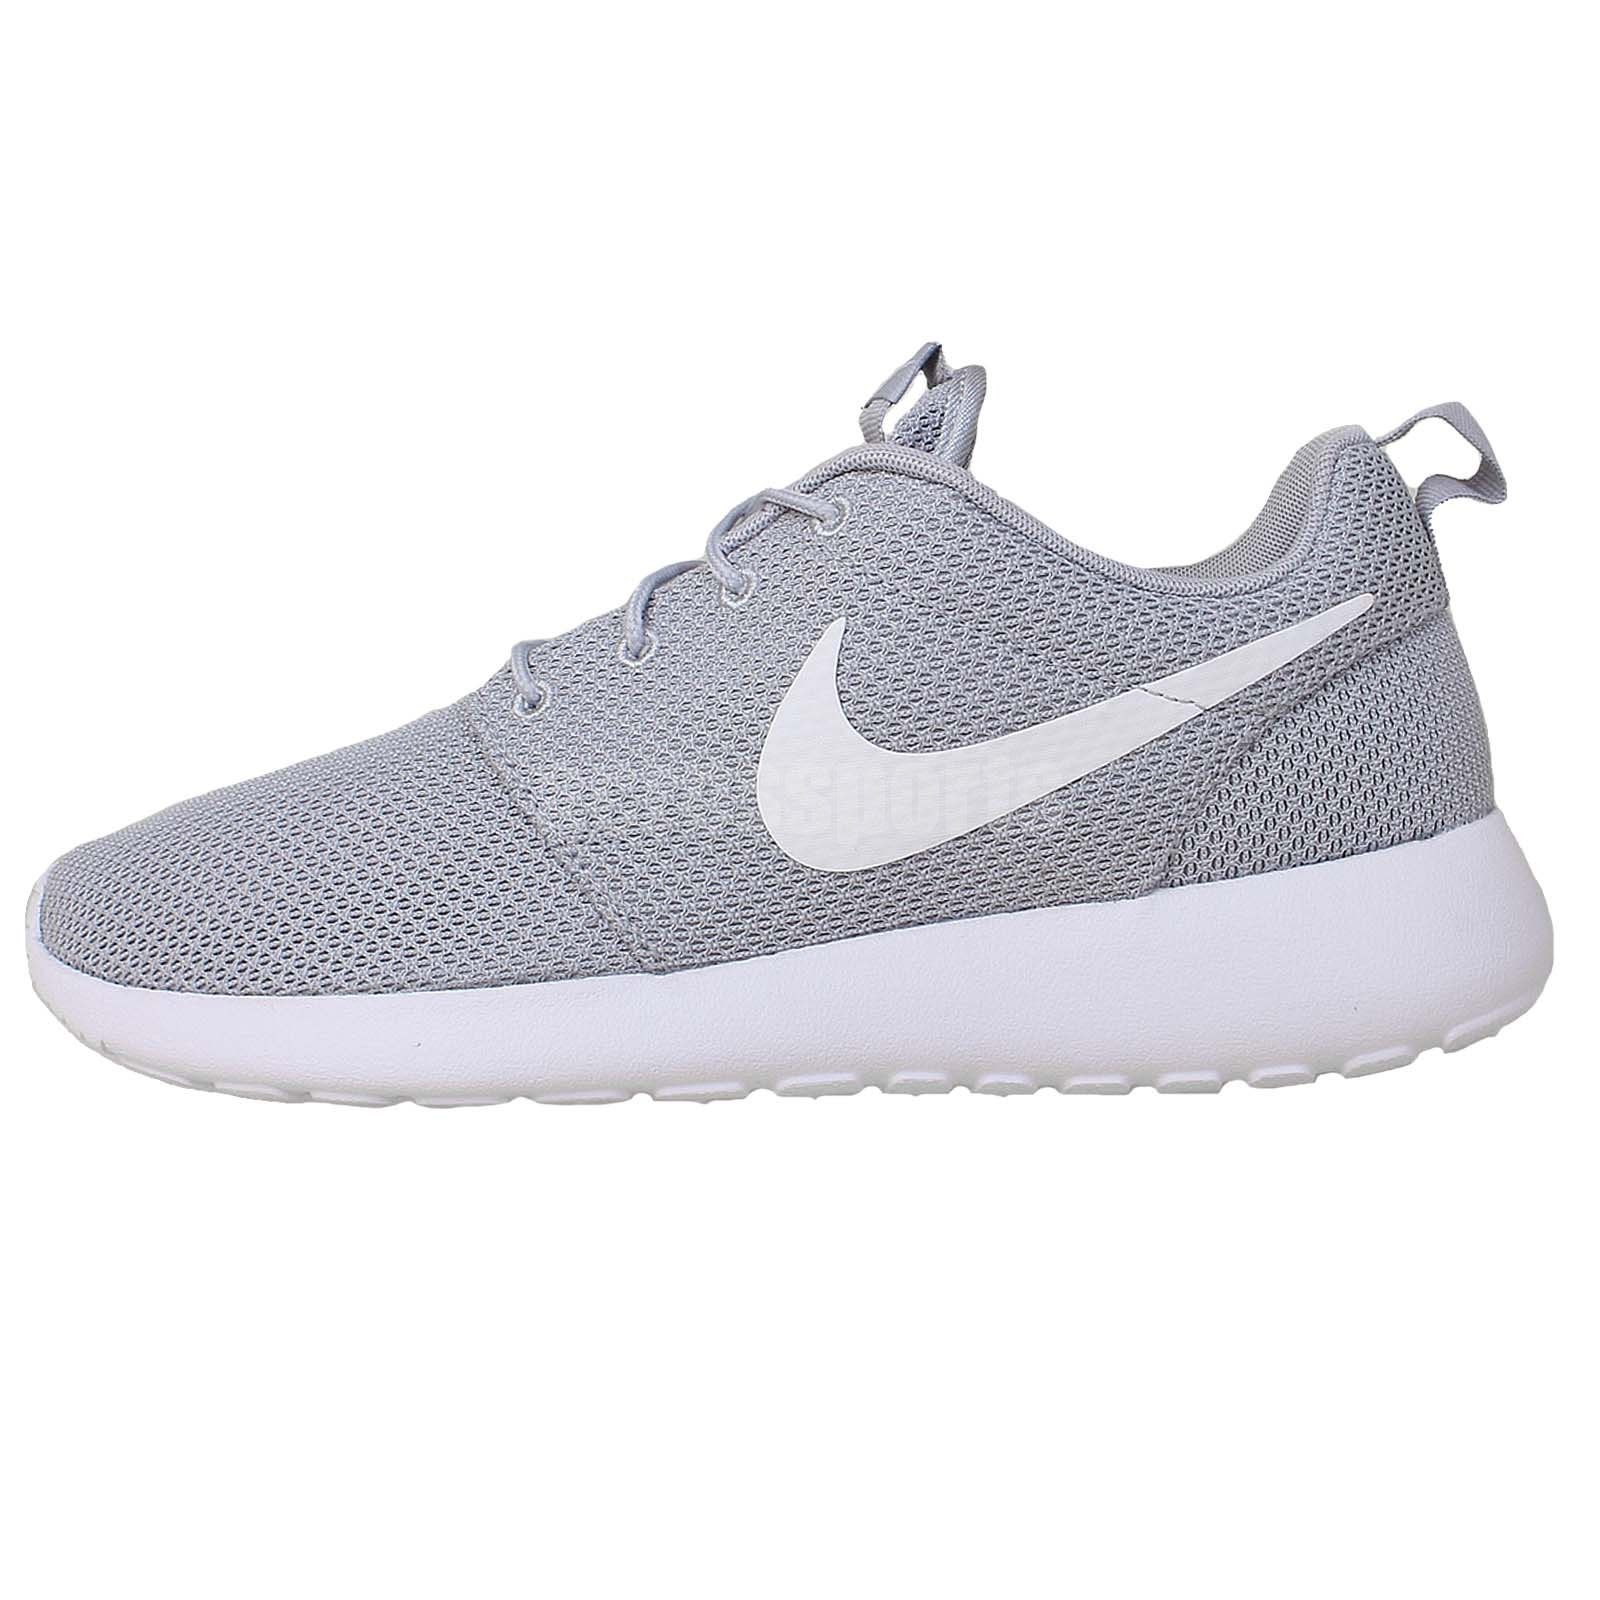 nike roshe run mens all white nursing shoes